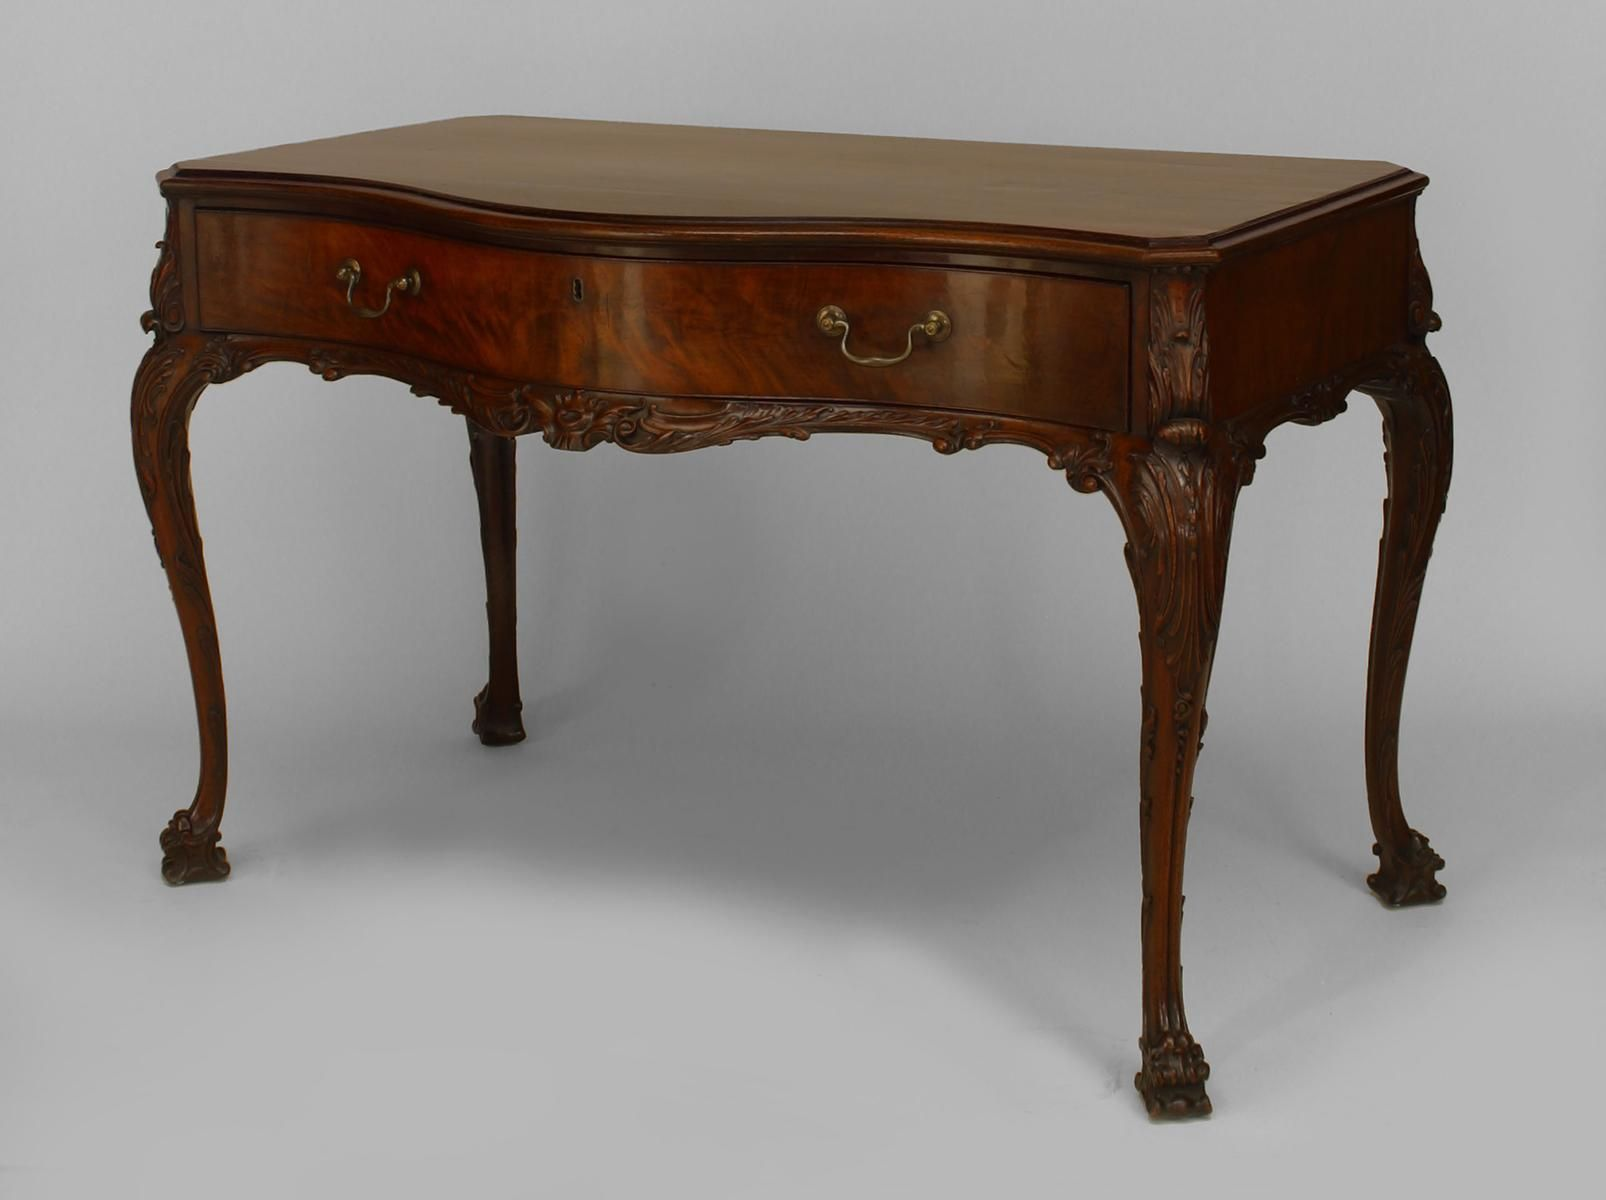 Chippendale Furniture English Chippendale Table Desk Mahogany Chippendale Antiques